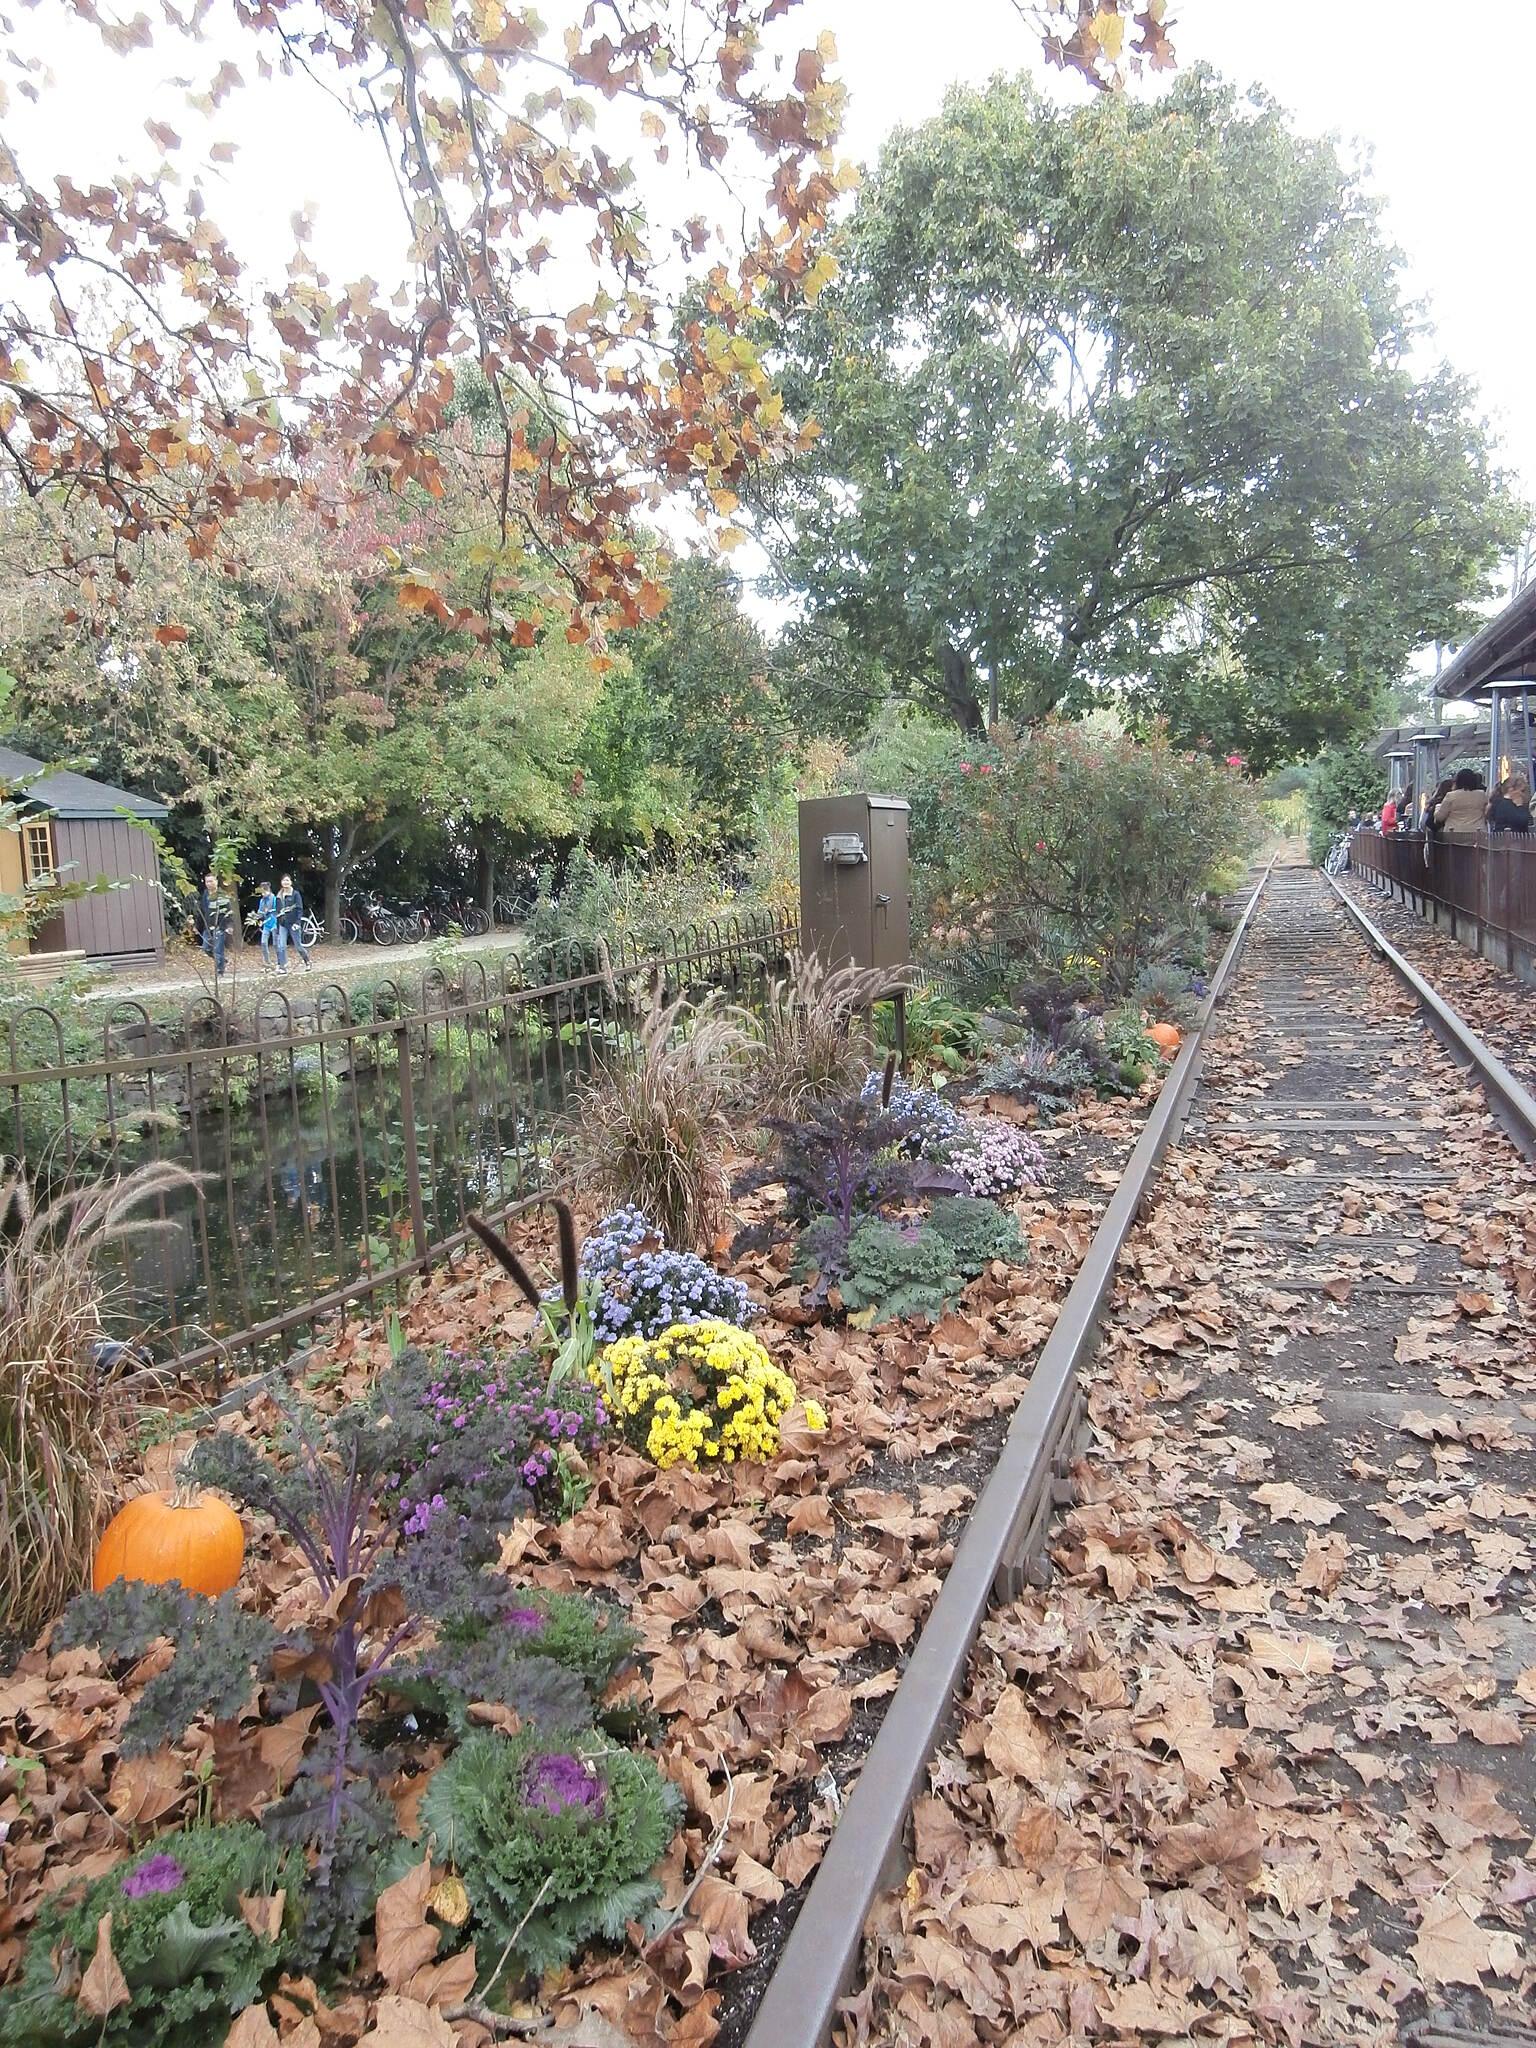 Delaware and Raritan Canal State Park Trail Lambertville Scenic fall photo near the Lambertville Station Restaurant